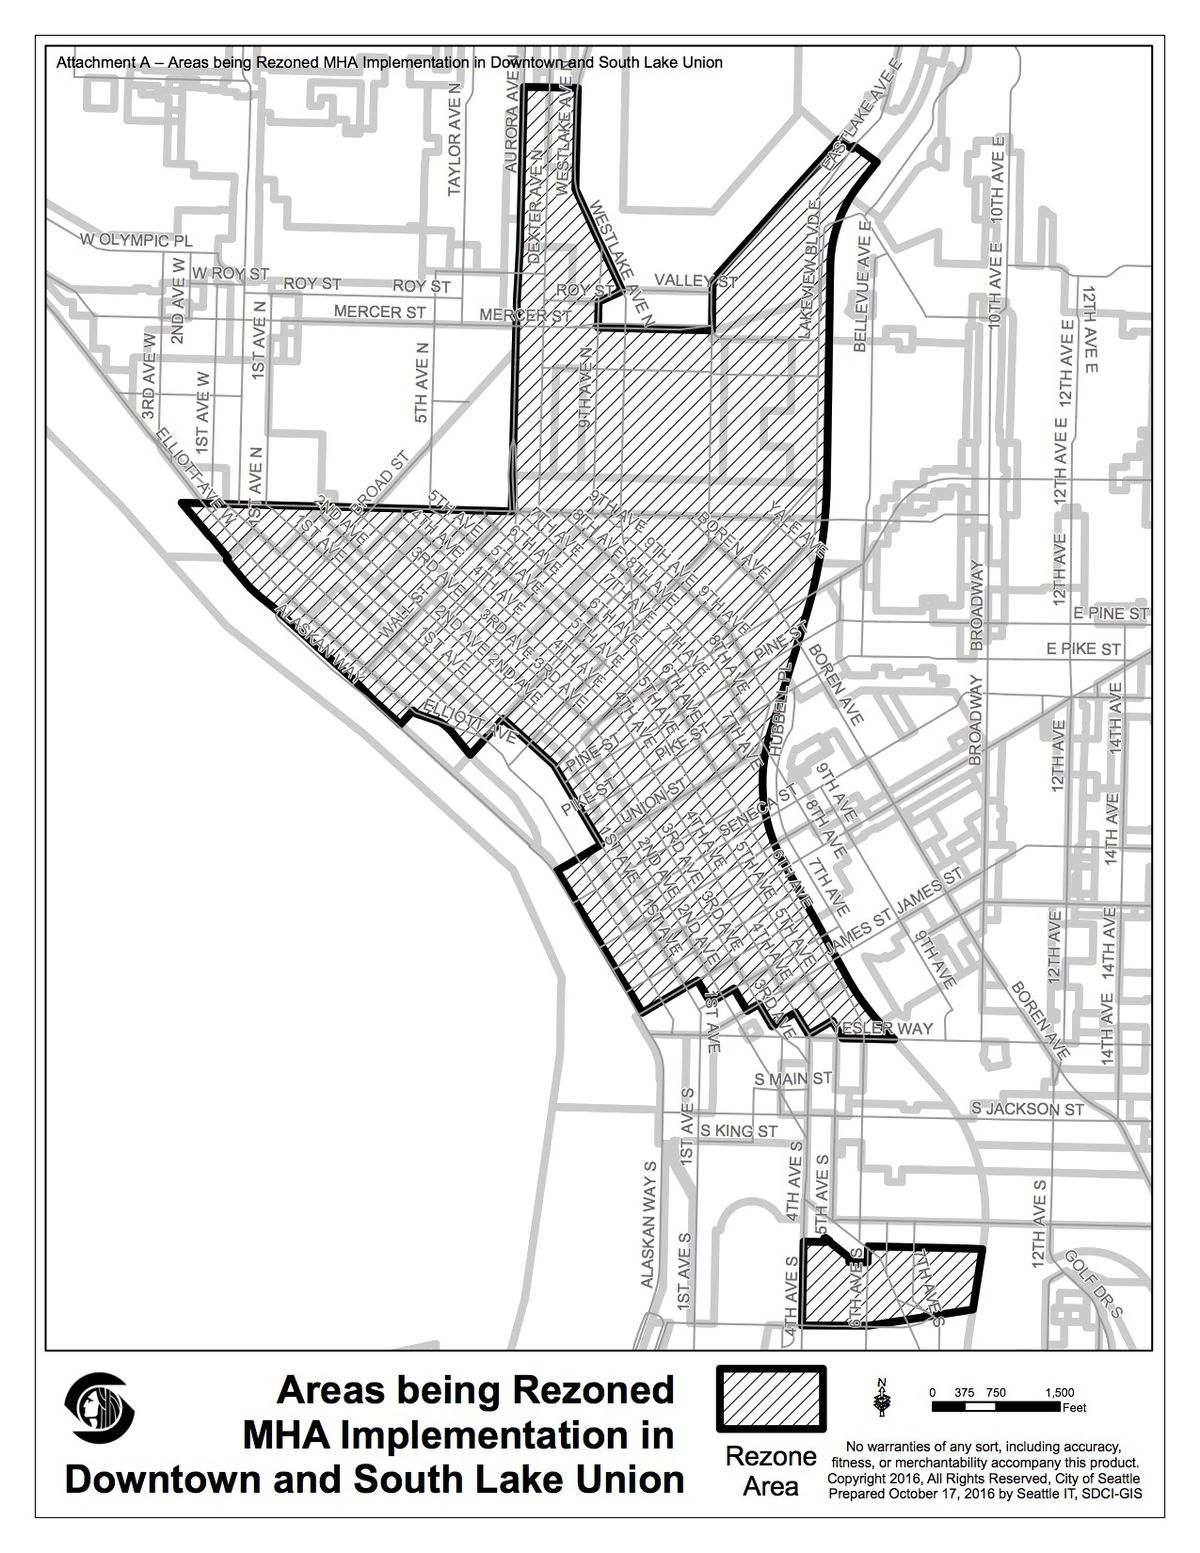 A black and white map of areas being rezoned